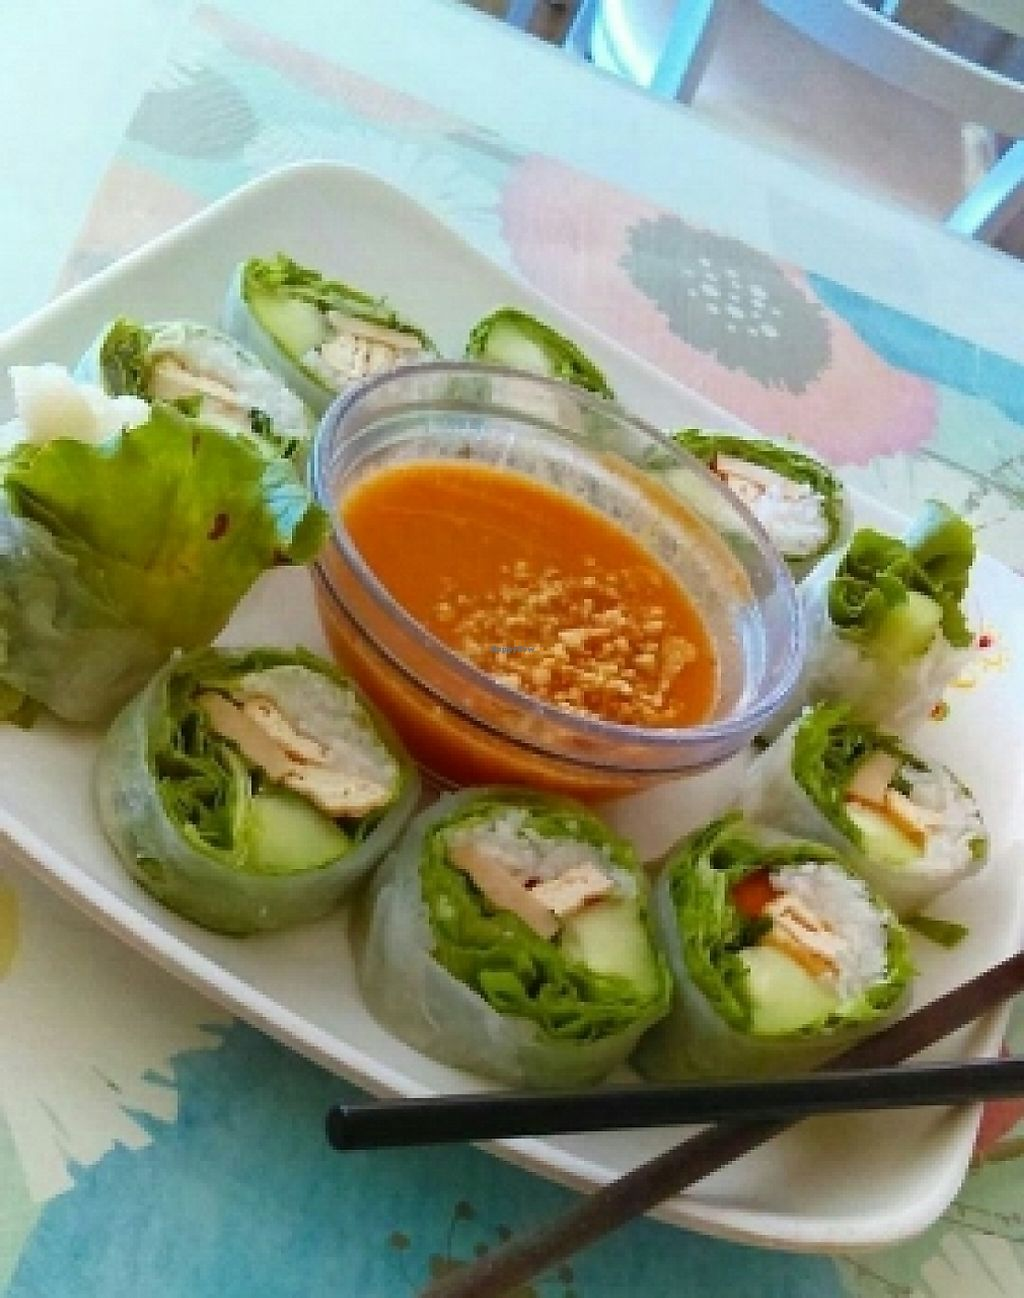 """Photo of Loving Hut - Mira Mesa  by <a href=""""/members/profile/yourmoderndayhippie"""">yourmoderndayhippie</a> <br/>spring rolls <br/> March 22, 2016  - <a href='/contact/abuse/image/25532/188709'>Report</a>"""